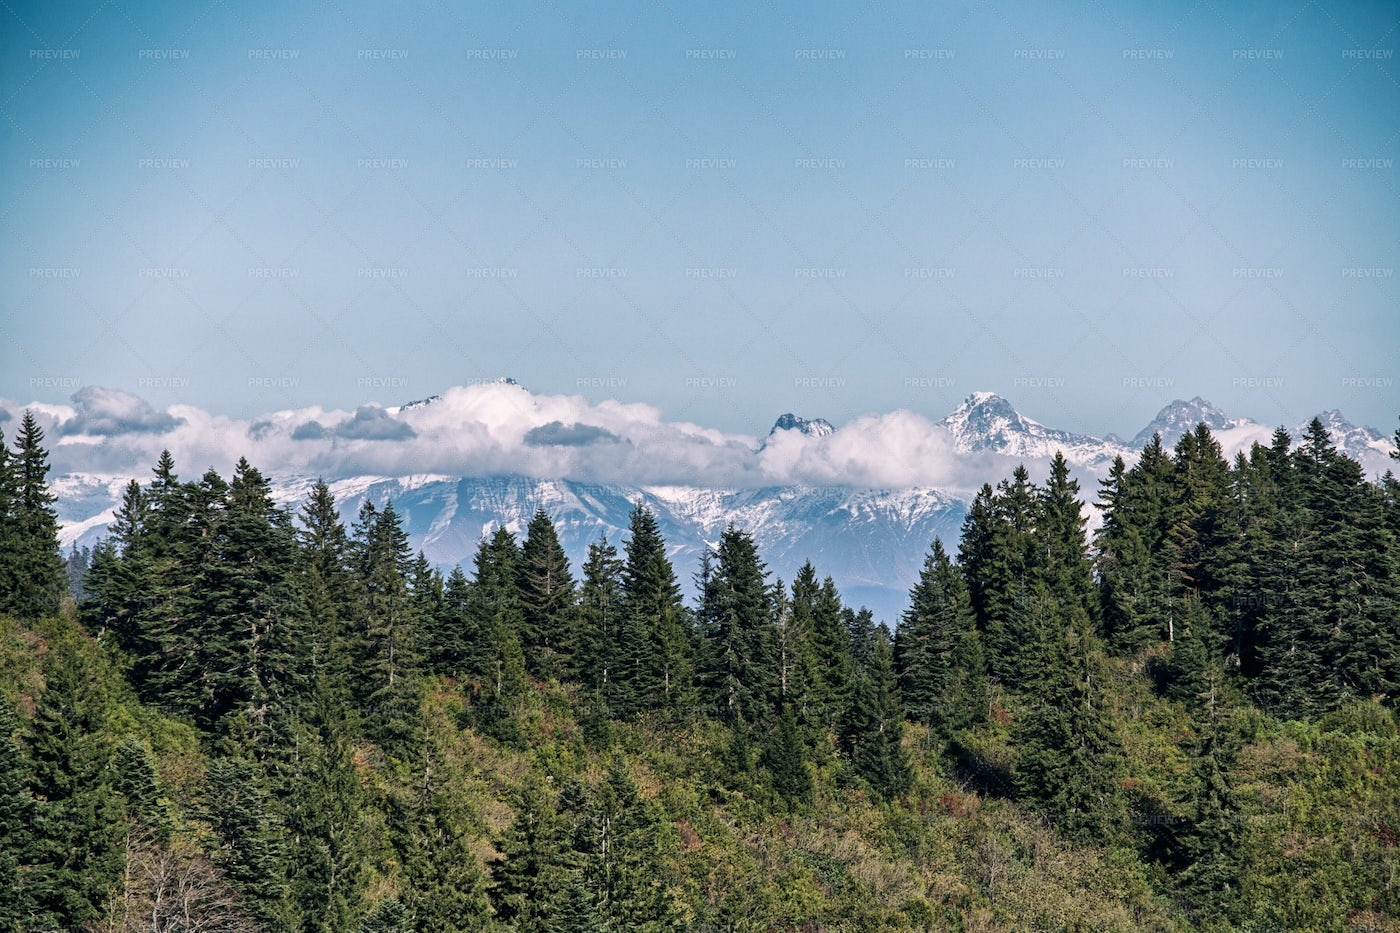 Forest And Snowed Mountain: Stock Photos